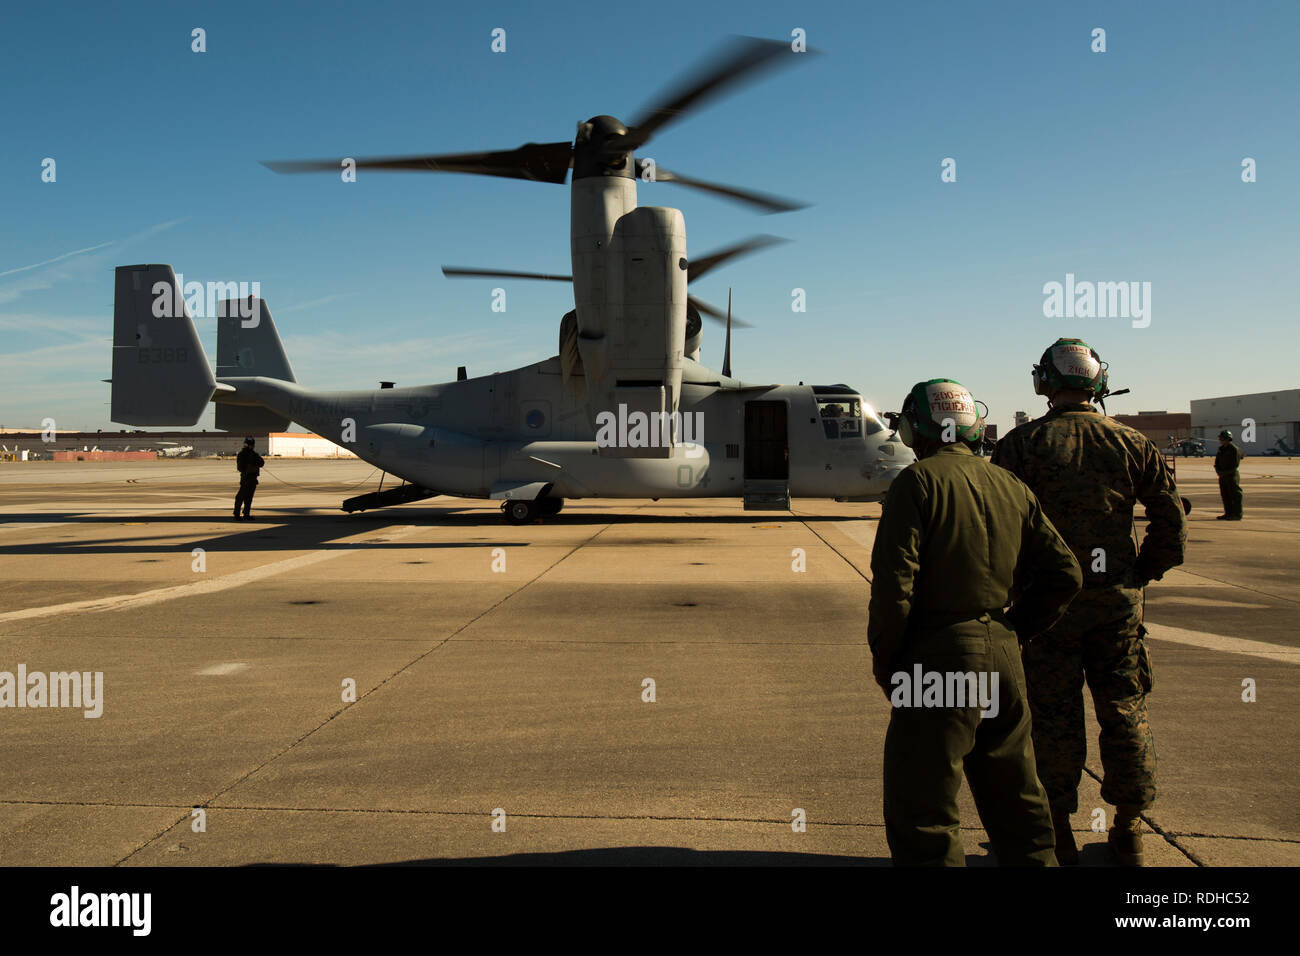 NAVAL STATION NORFOLK, NORFOLK, Va. —Marines with Marine Medium Tiltrotor Squadron 774 oversee the functions check of an MV-22 Osprey before a familiarization flight Jan. 16, 2018, at Naval Station Norfolk in Norfolk, Virginia. The flight afforded U.S. Marine Forces Command Marines and Sailors the opportunity to experience what it is like to fly in an osprey and strengthen unit morale between VMM-774 and MARFORCOM. (U.S. Marine Corps photo by Cpl. Danielle Prentice/ Released) Stock Photo